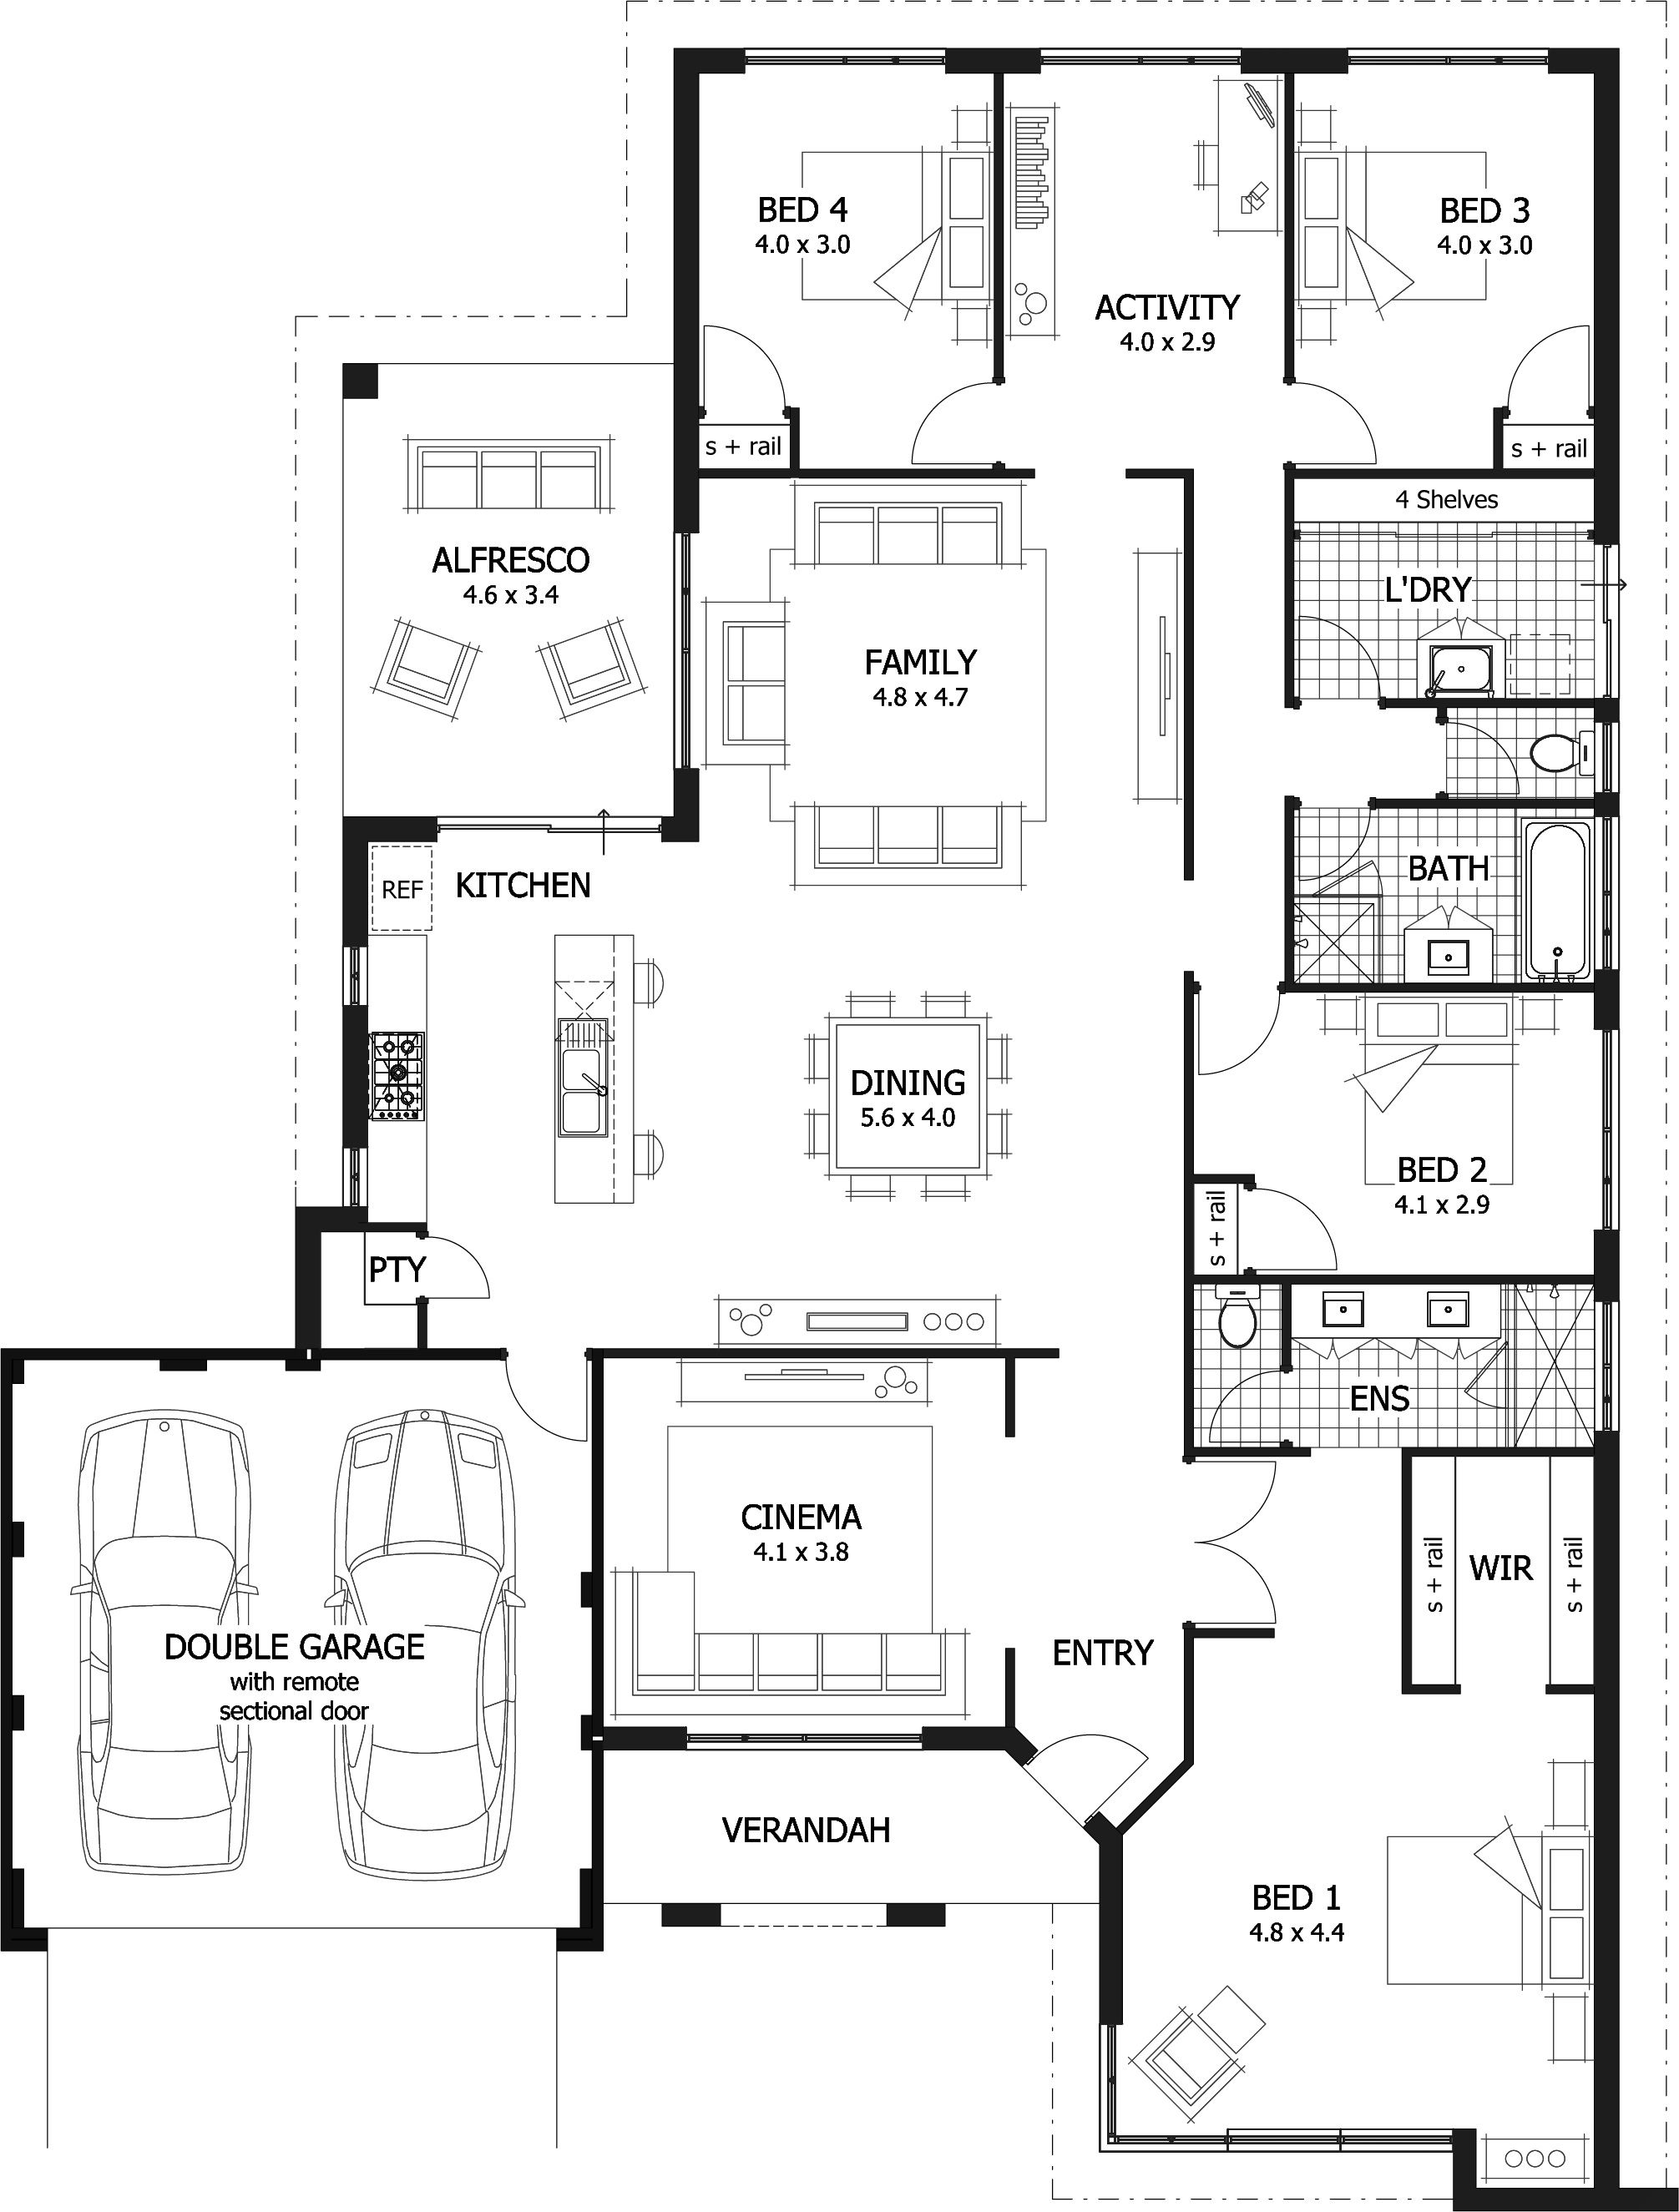 Find A 4 Bedroom Home Thatu0027s Right For You From Our Current Range Of Home  Designs